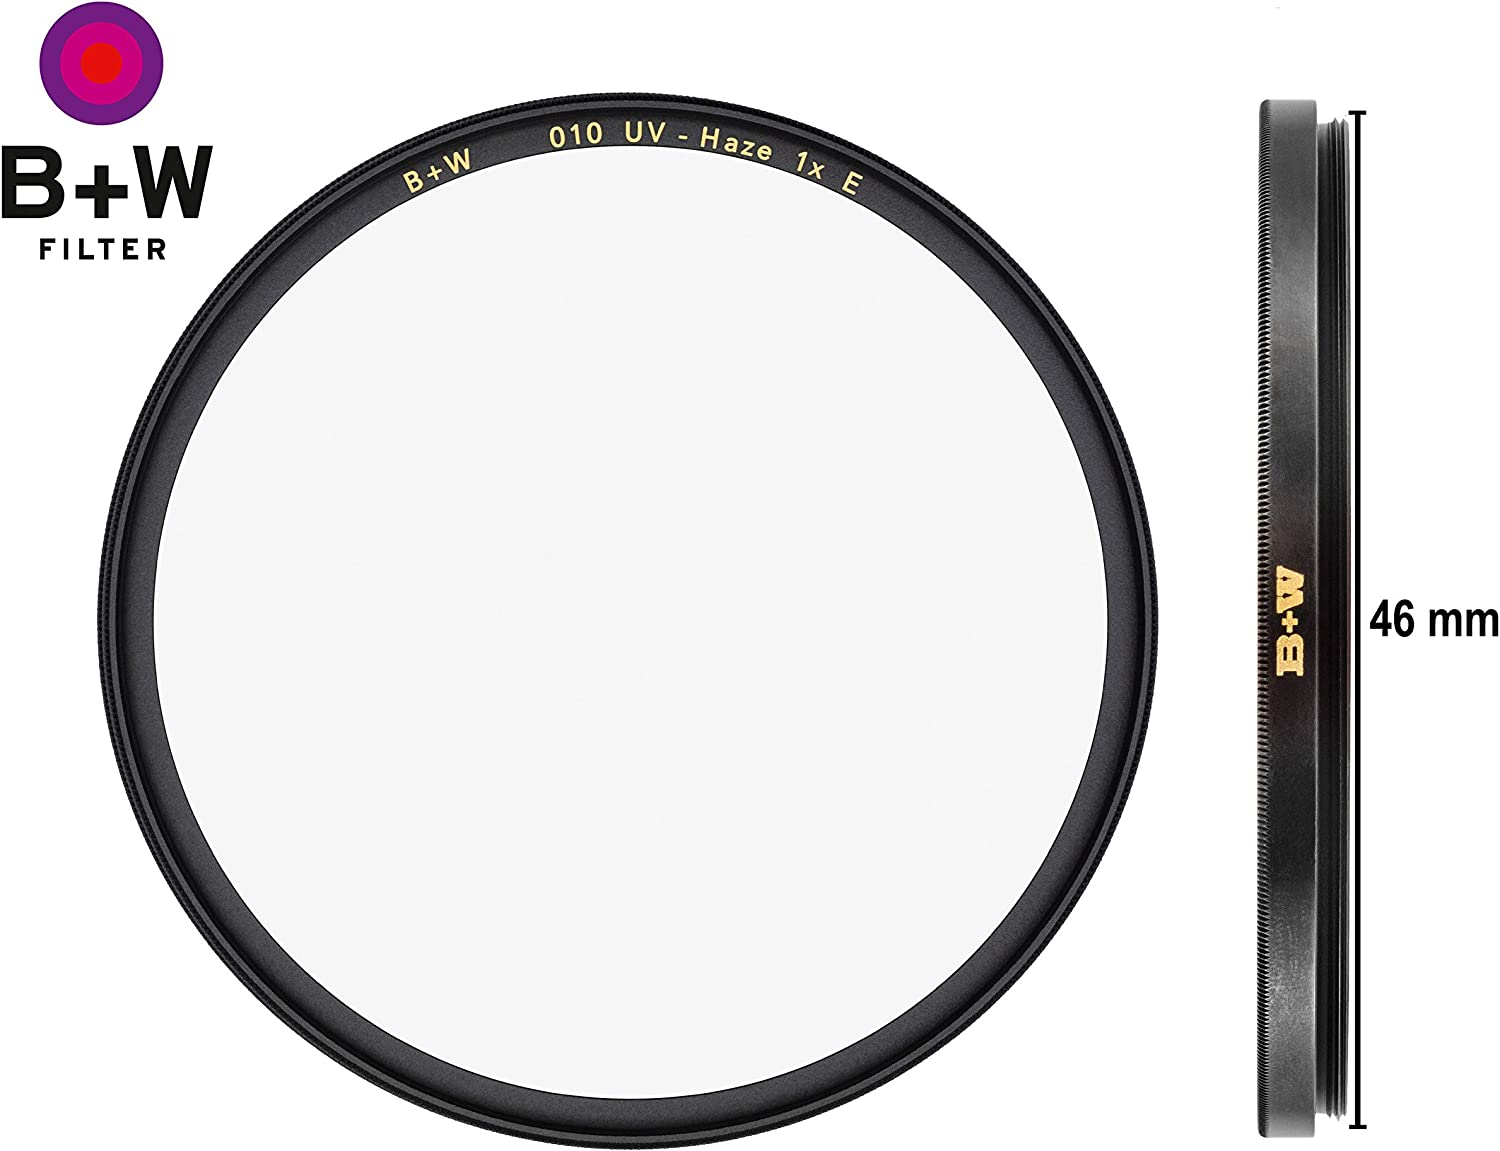 HTC 16 Layers Multi-Resistant and Nano Coating 010 B W UV-Haze Protection Filter for Camera Lens T-PRO Ultra Slim Titan Mount 62 mm Photography Filter